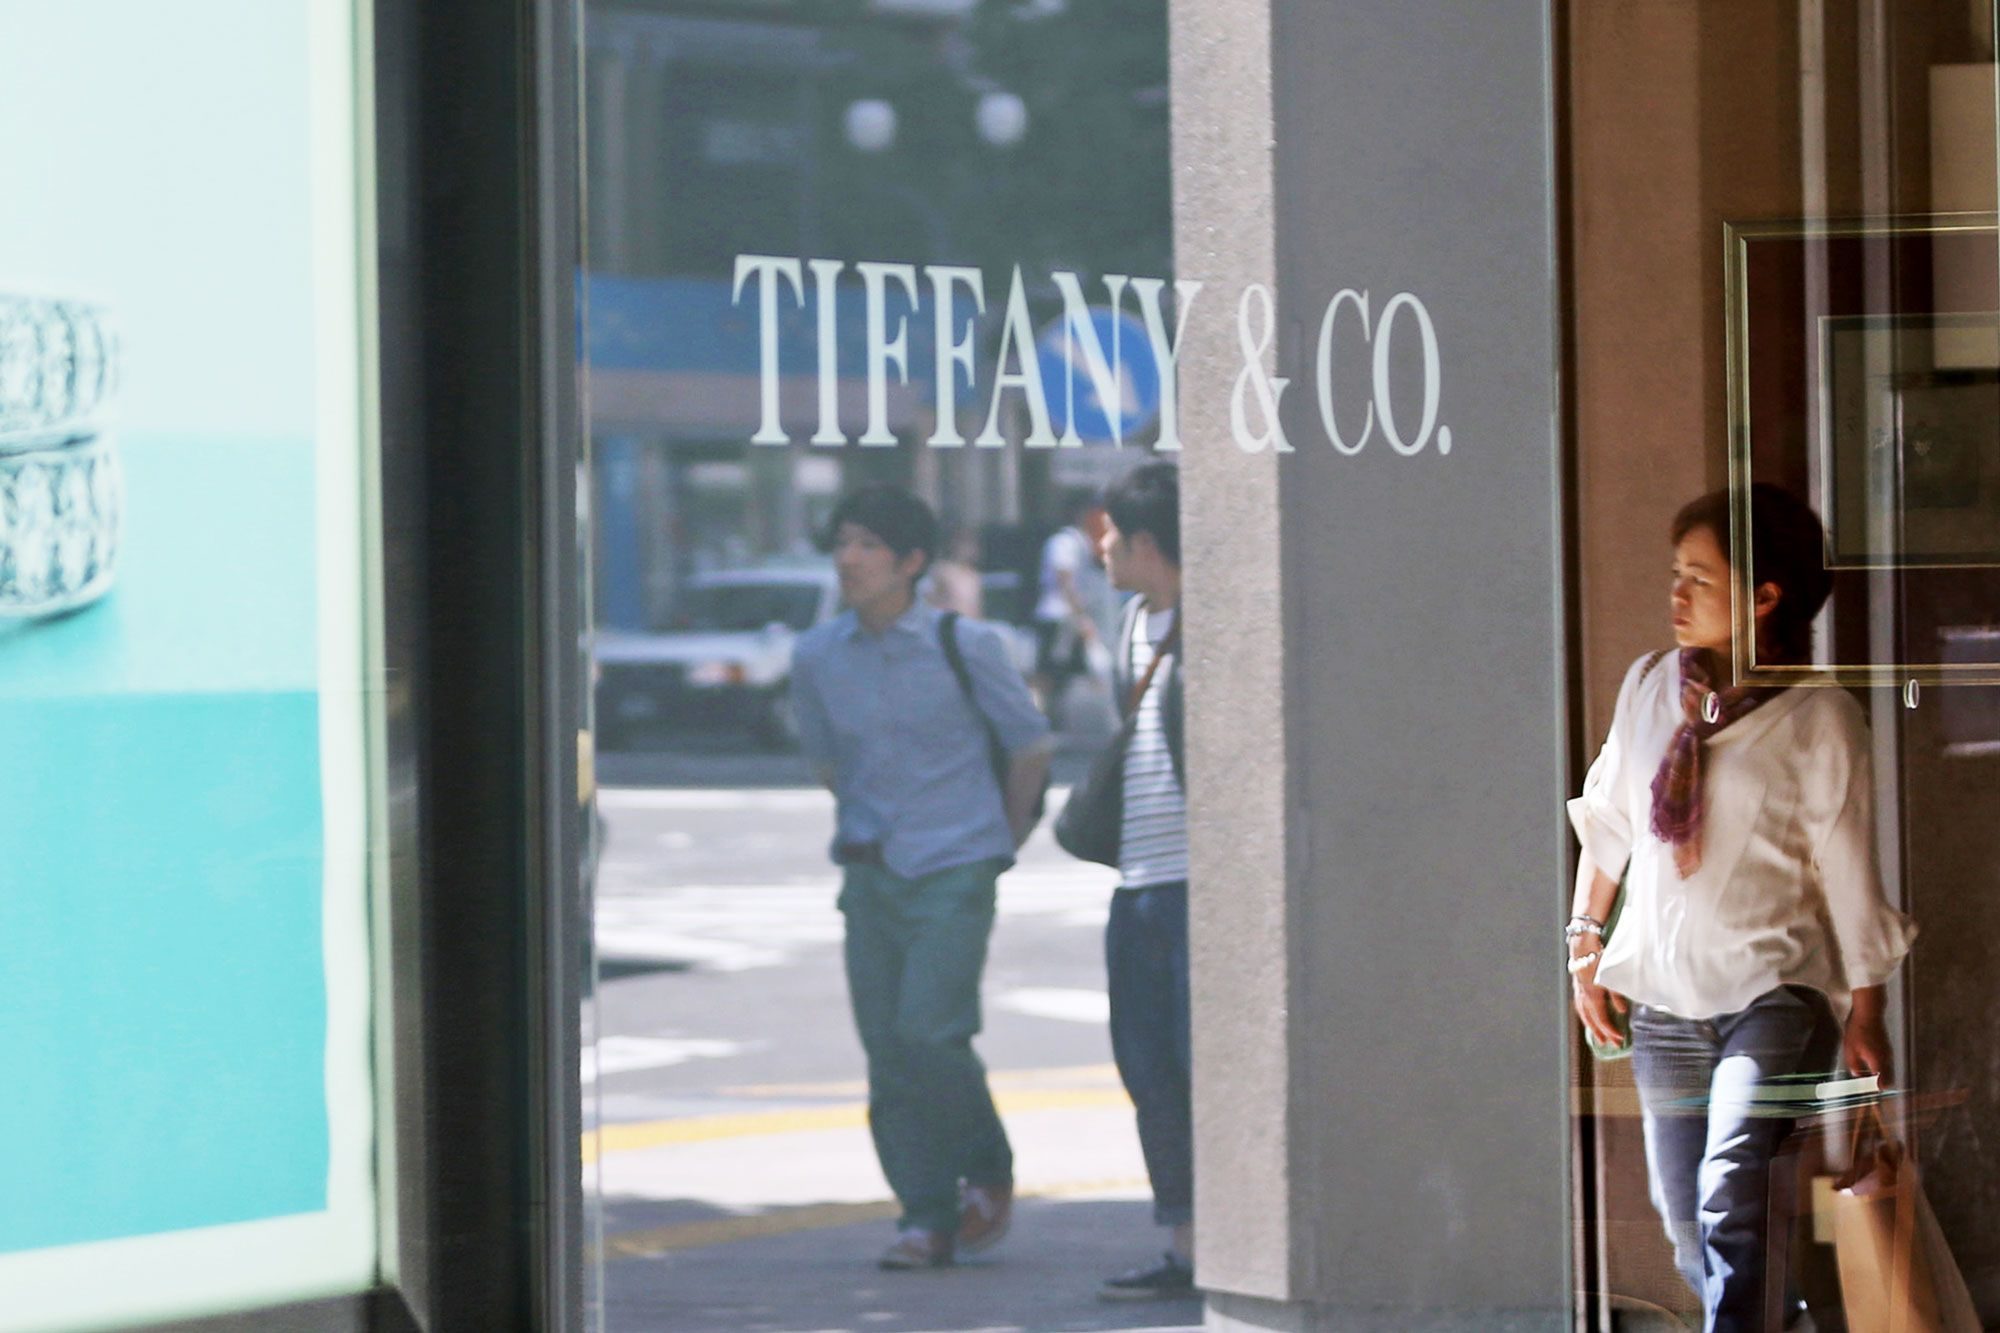 Tiffany quarterly same-store sales miss estimates